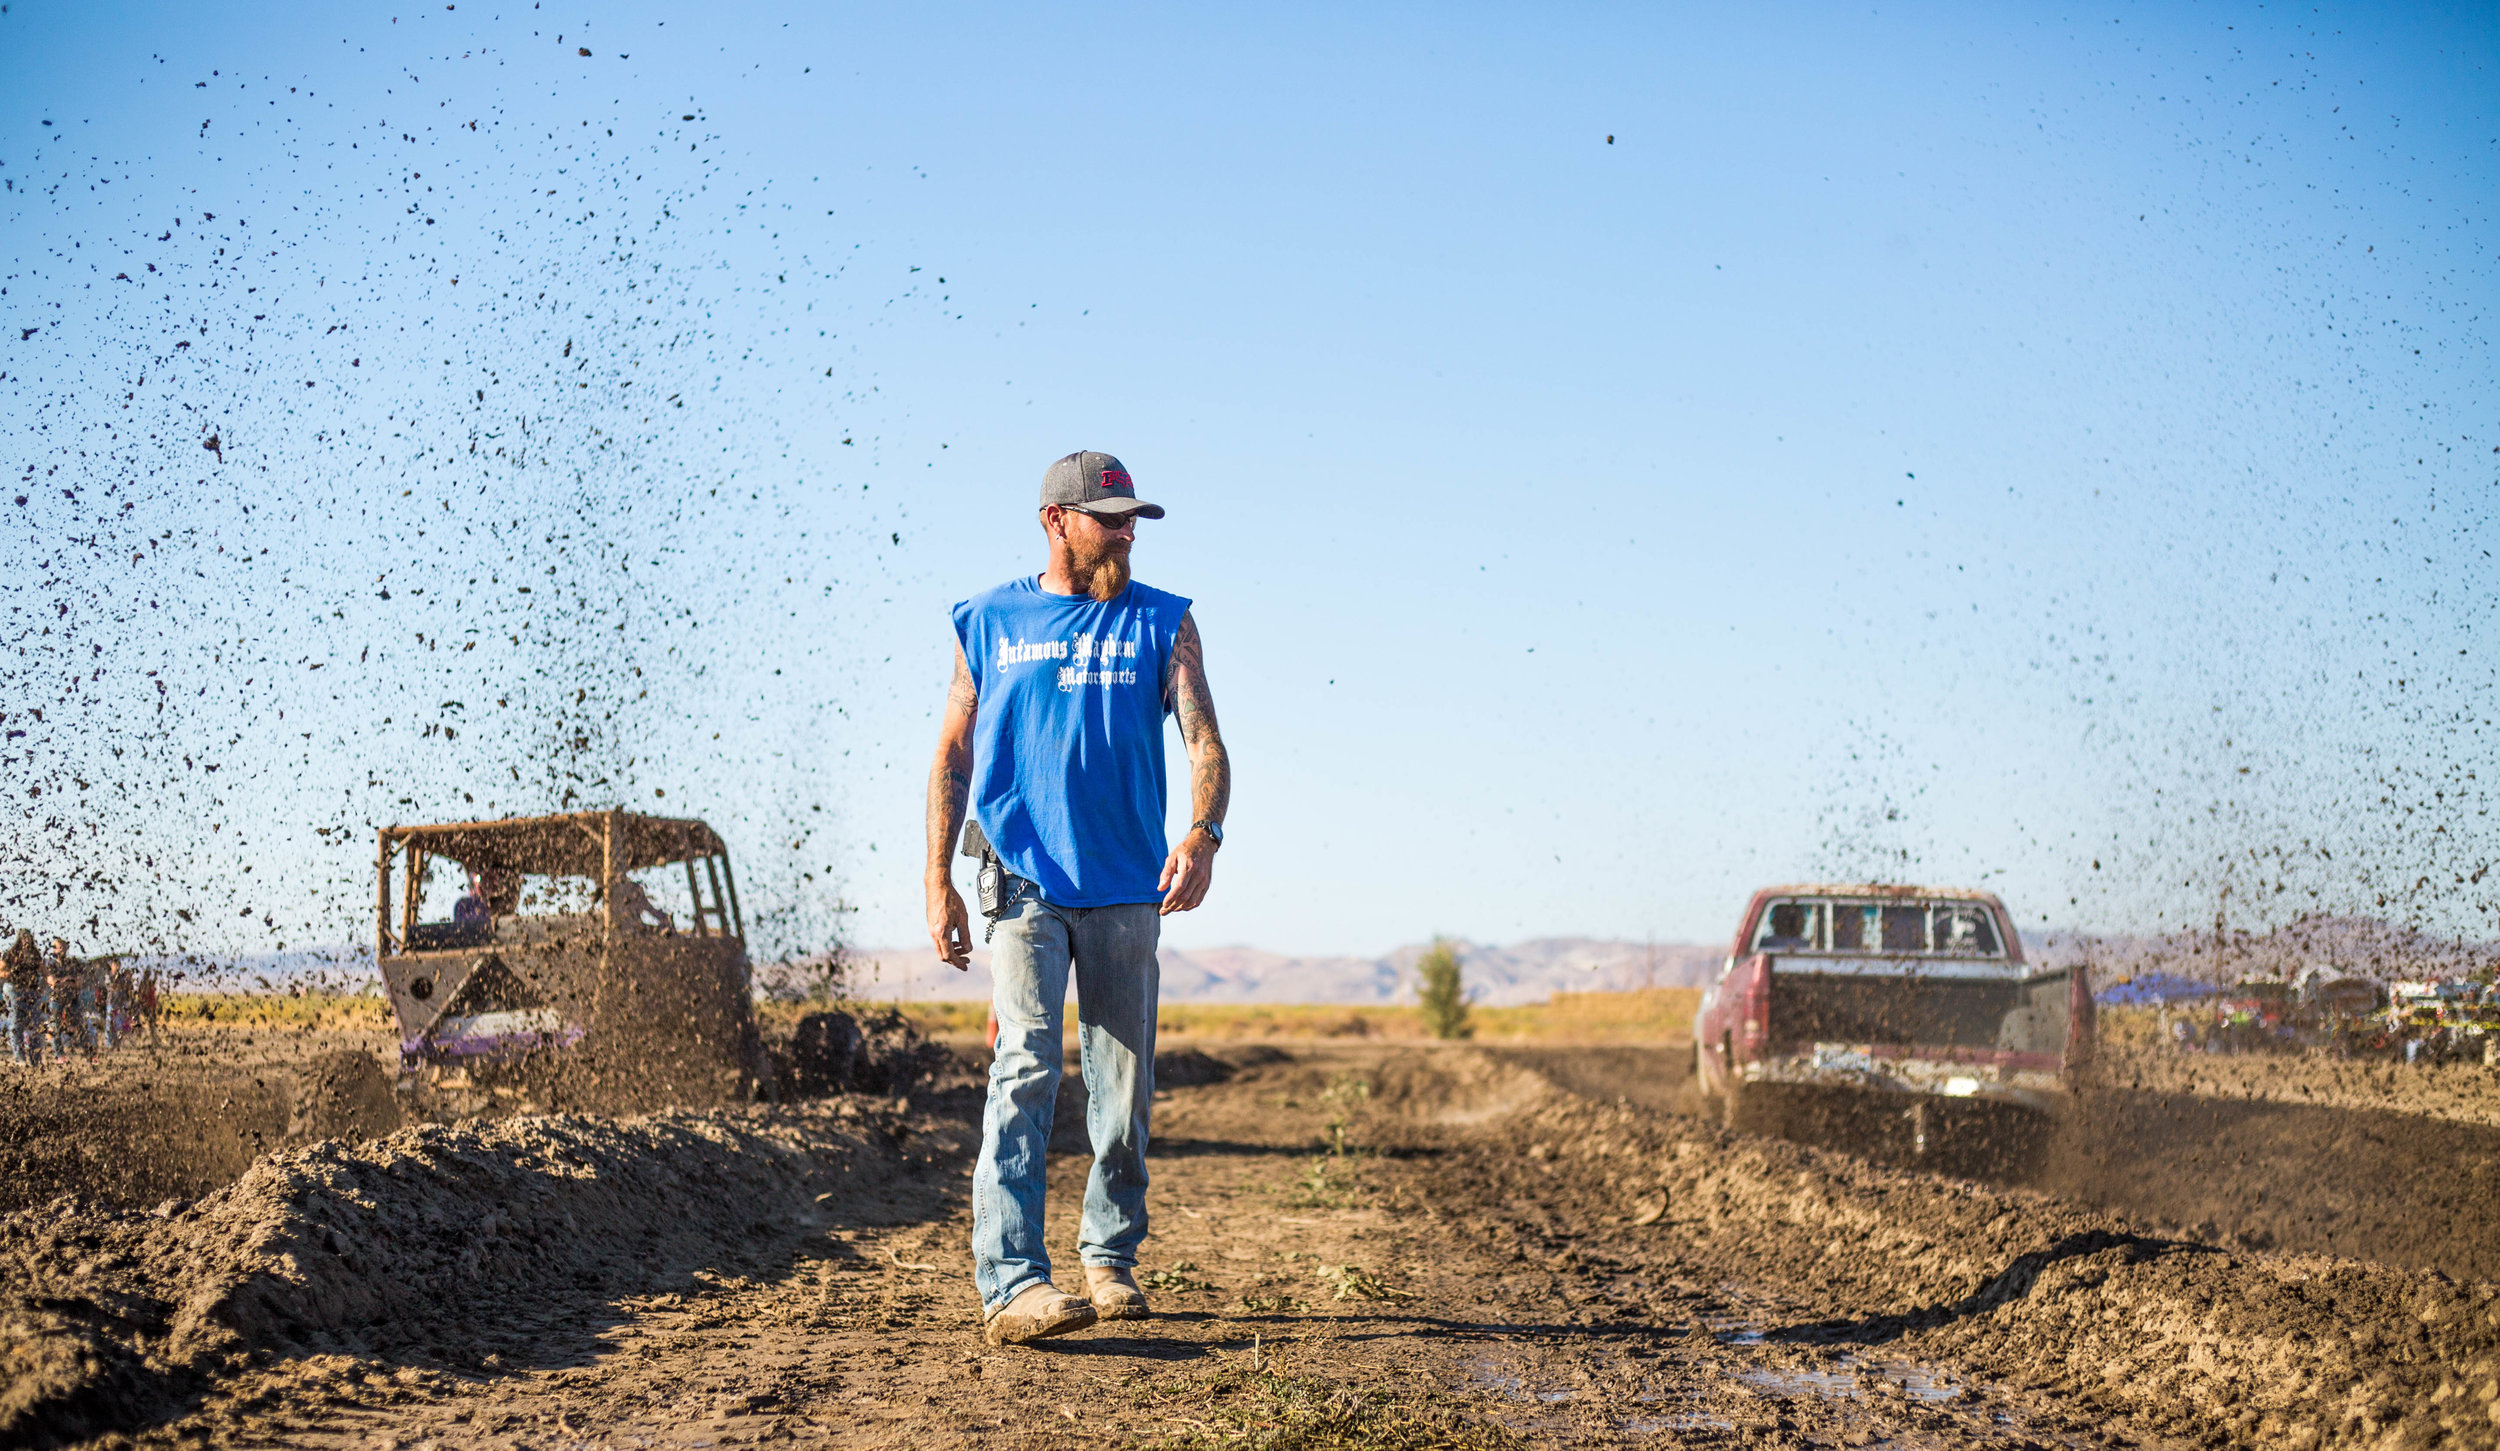 A Walker River Reservation local directs the annual mud drag races which attracts crowds from all over rural Nevada in early August.